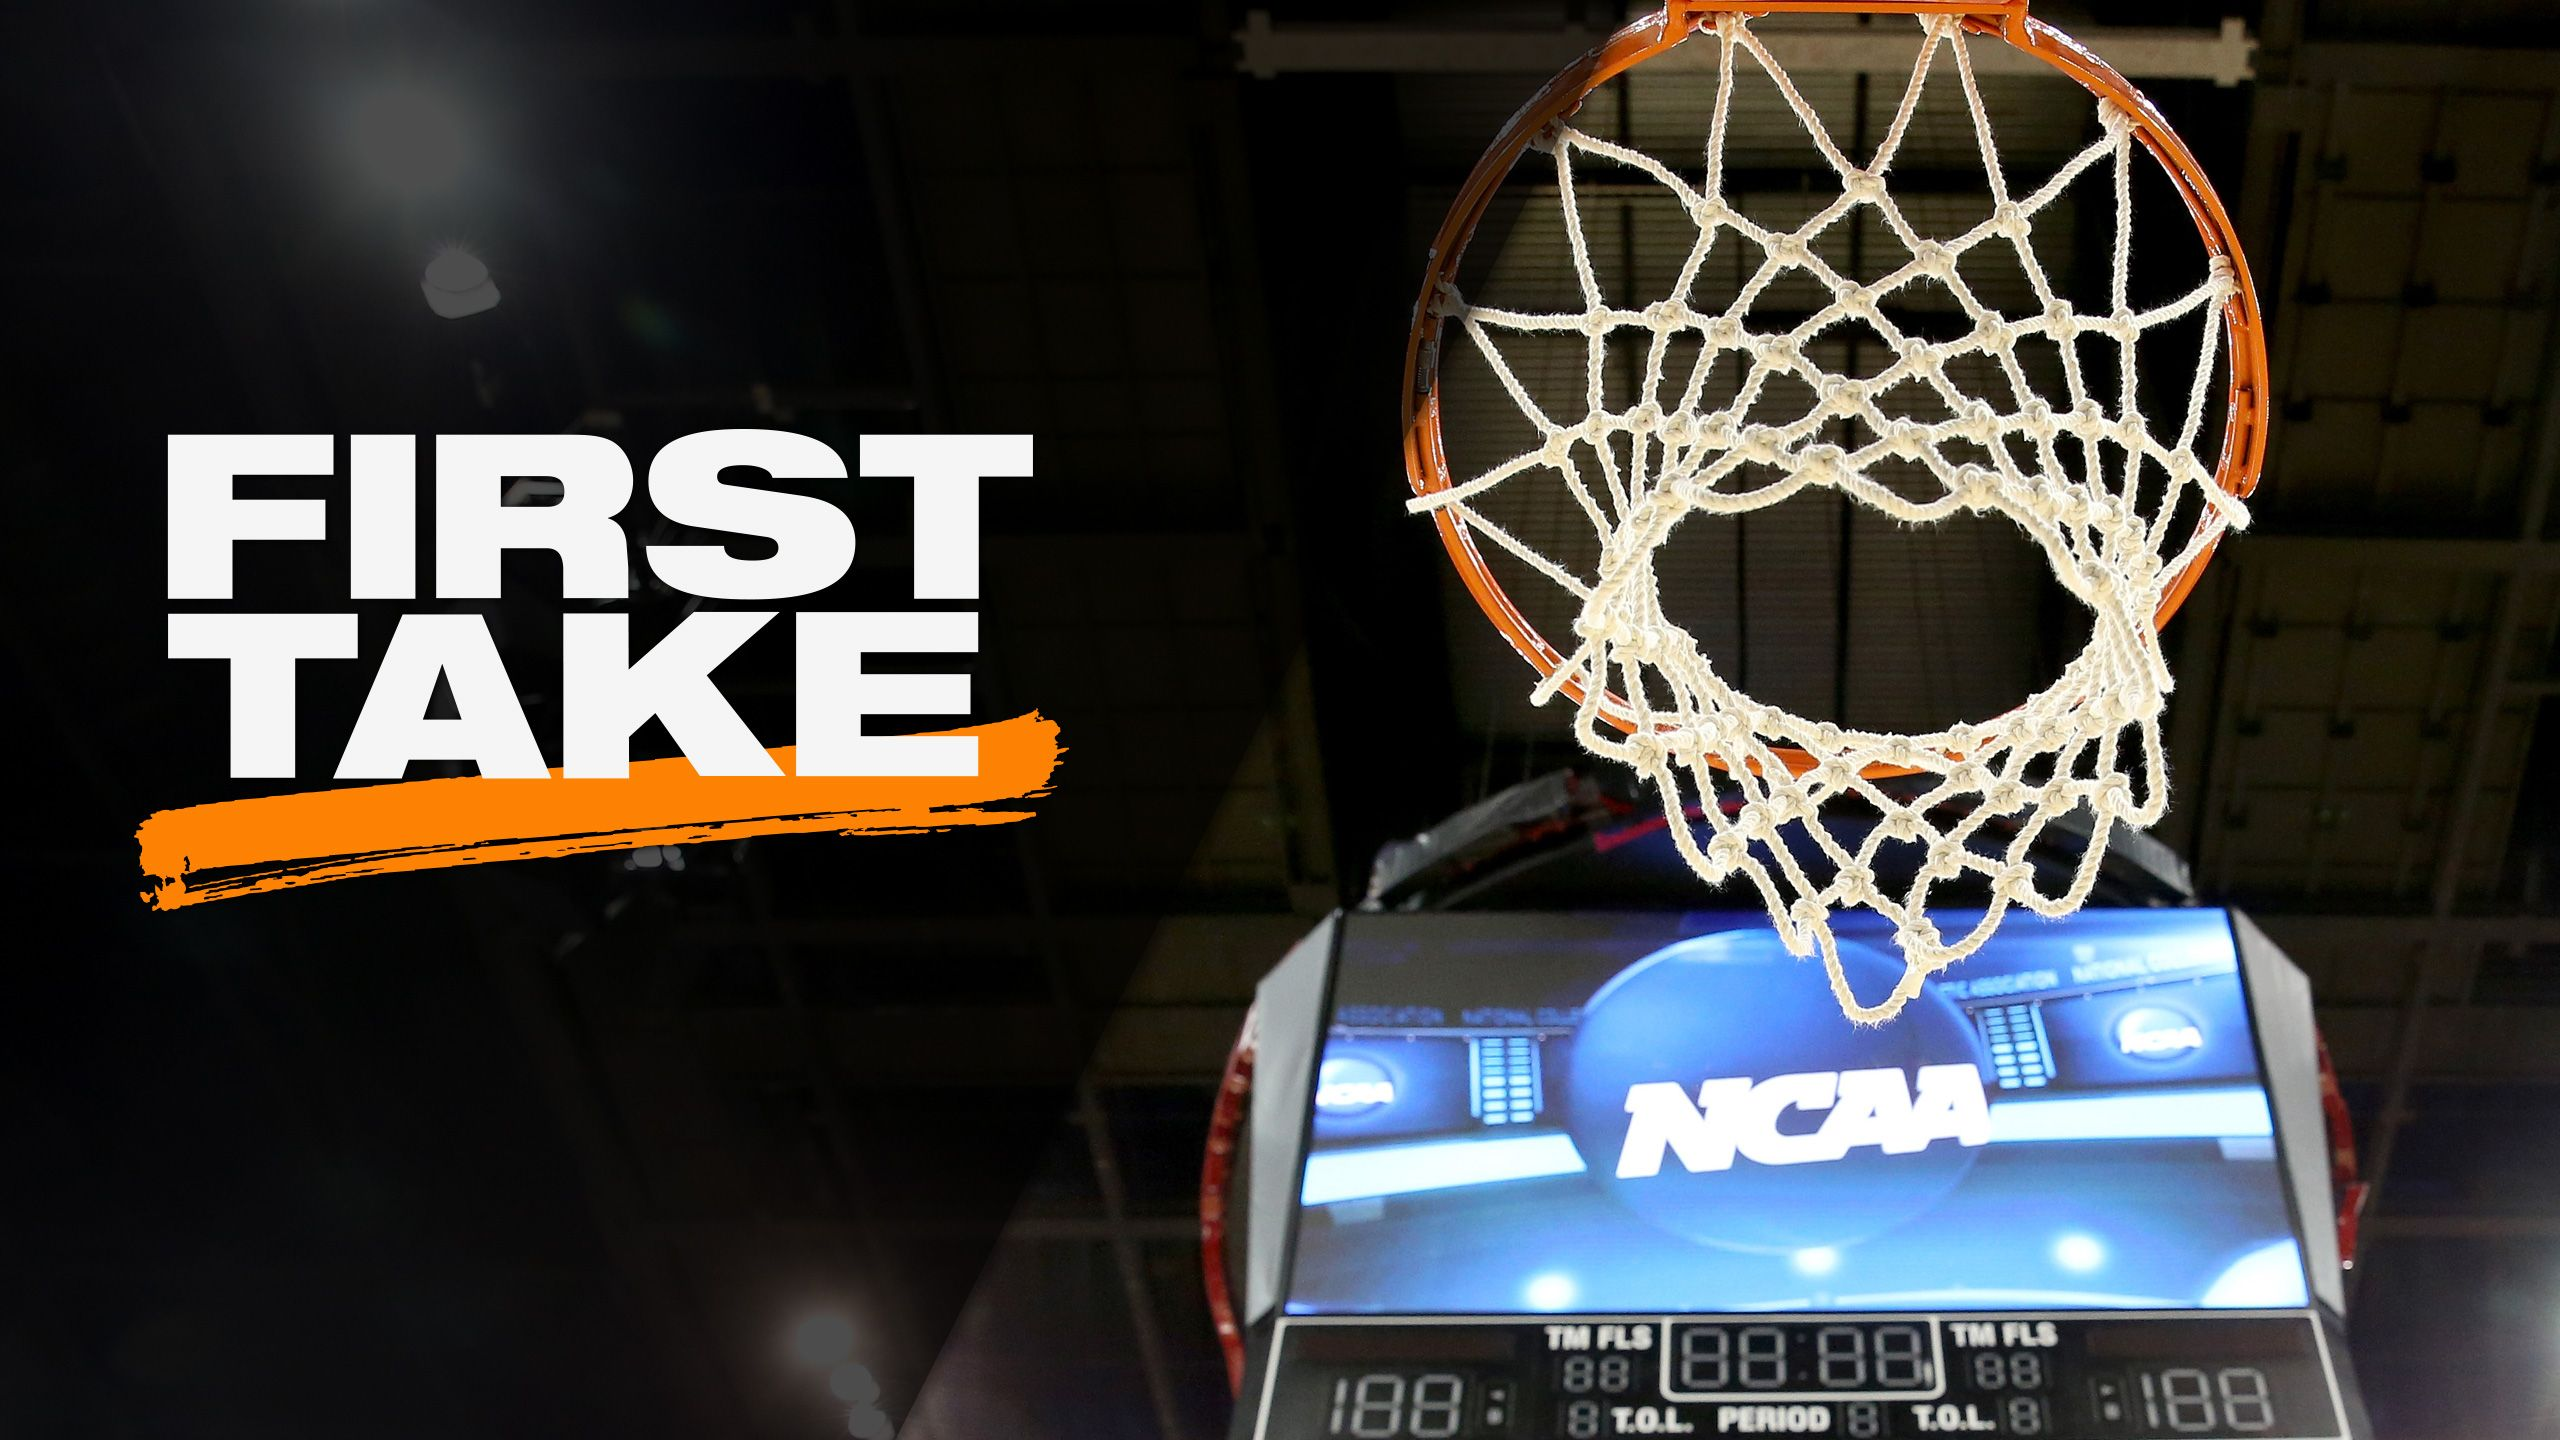 Fri, 2/23 - First Take